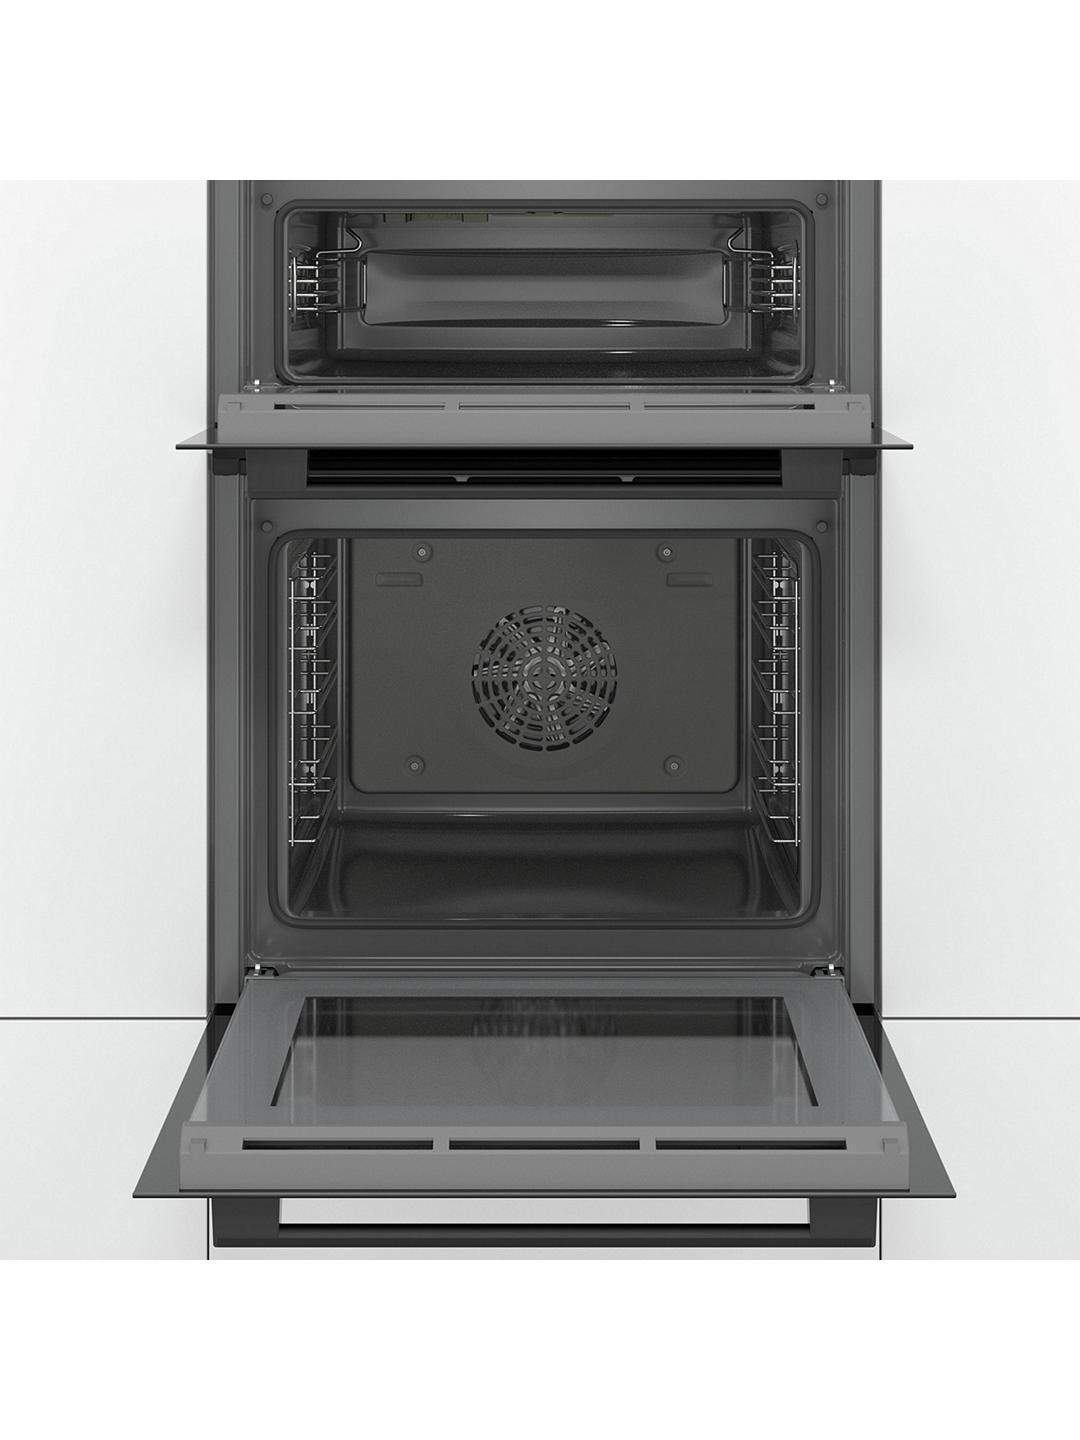 Buy Bosch Serie 4 MBS533BB0B Built-In Double Oven, Black Online at johnlewis.com